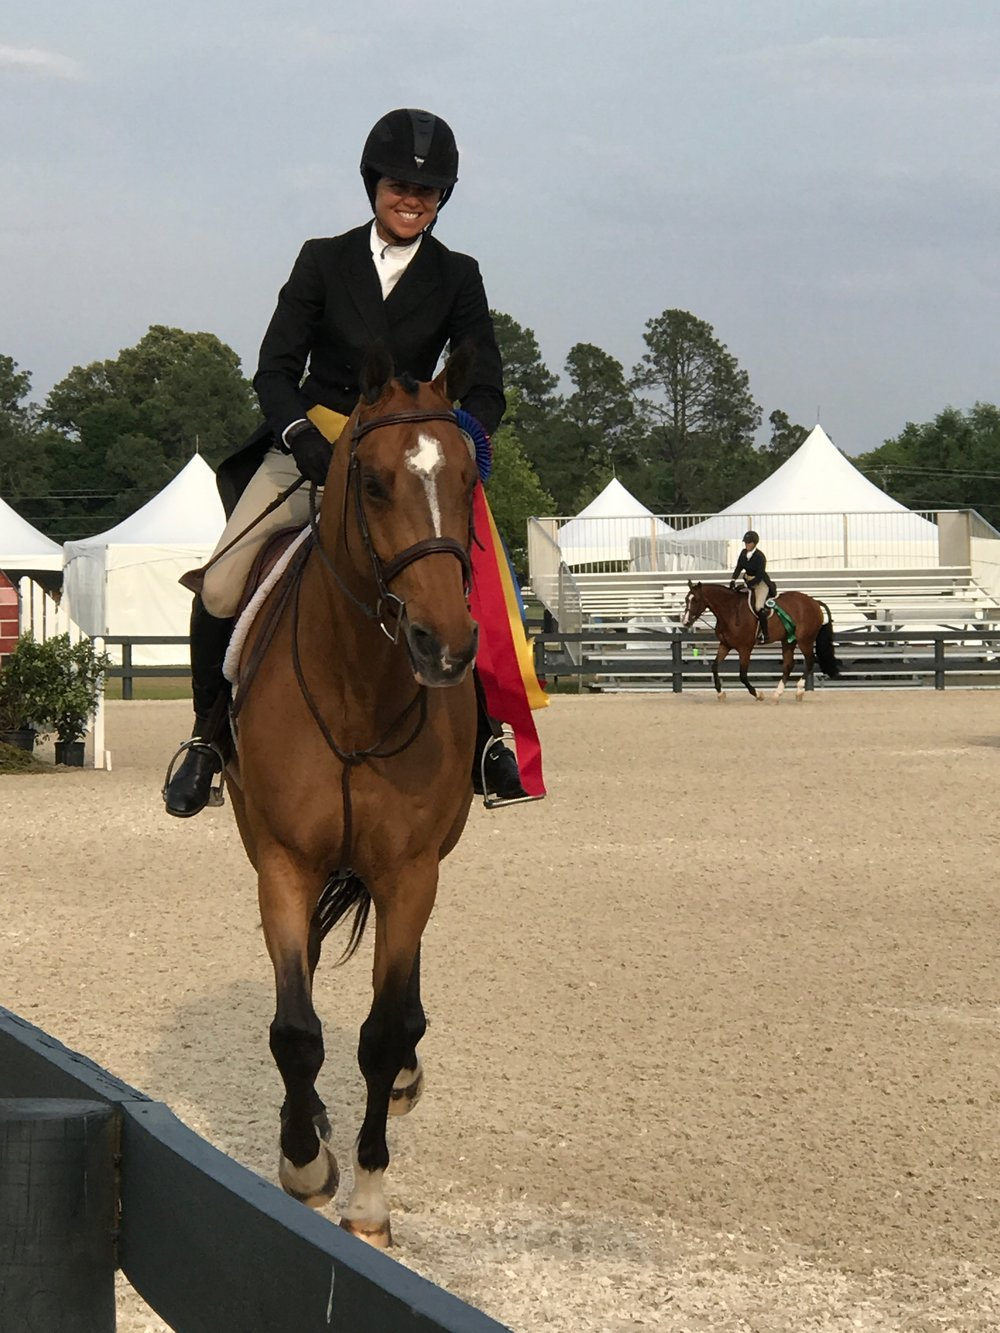 Liza Boyd and O'Ryan won the USHJA International Hunter Derby at Aiken